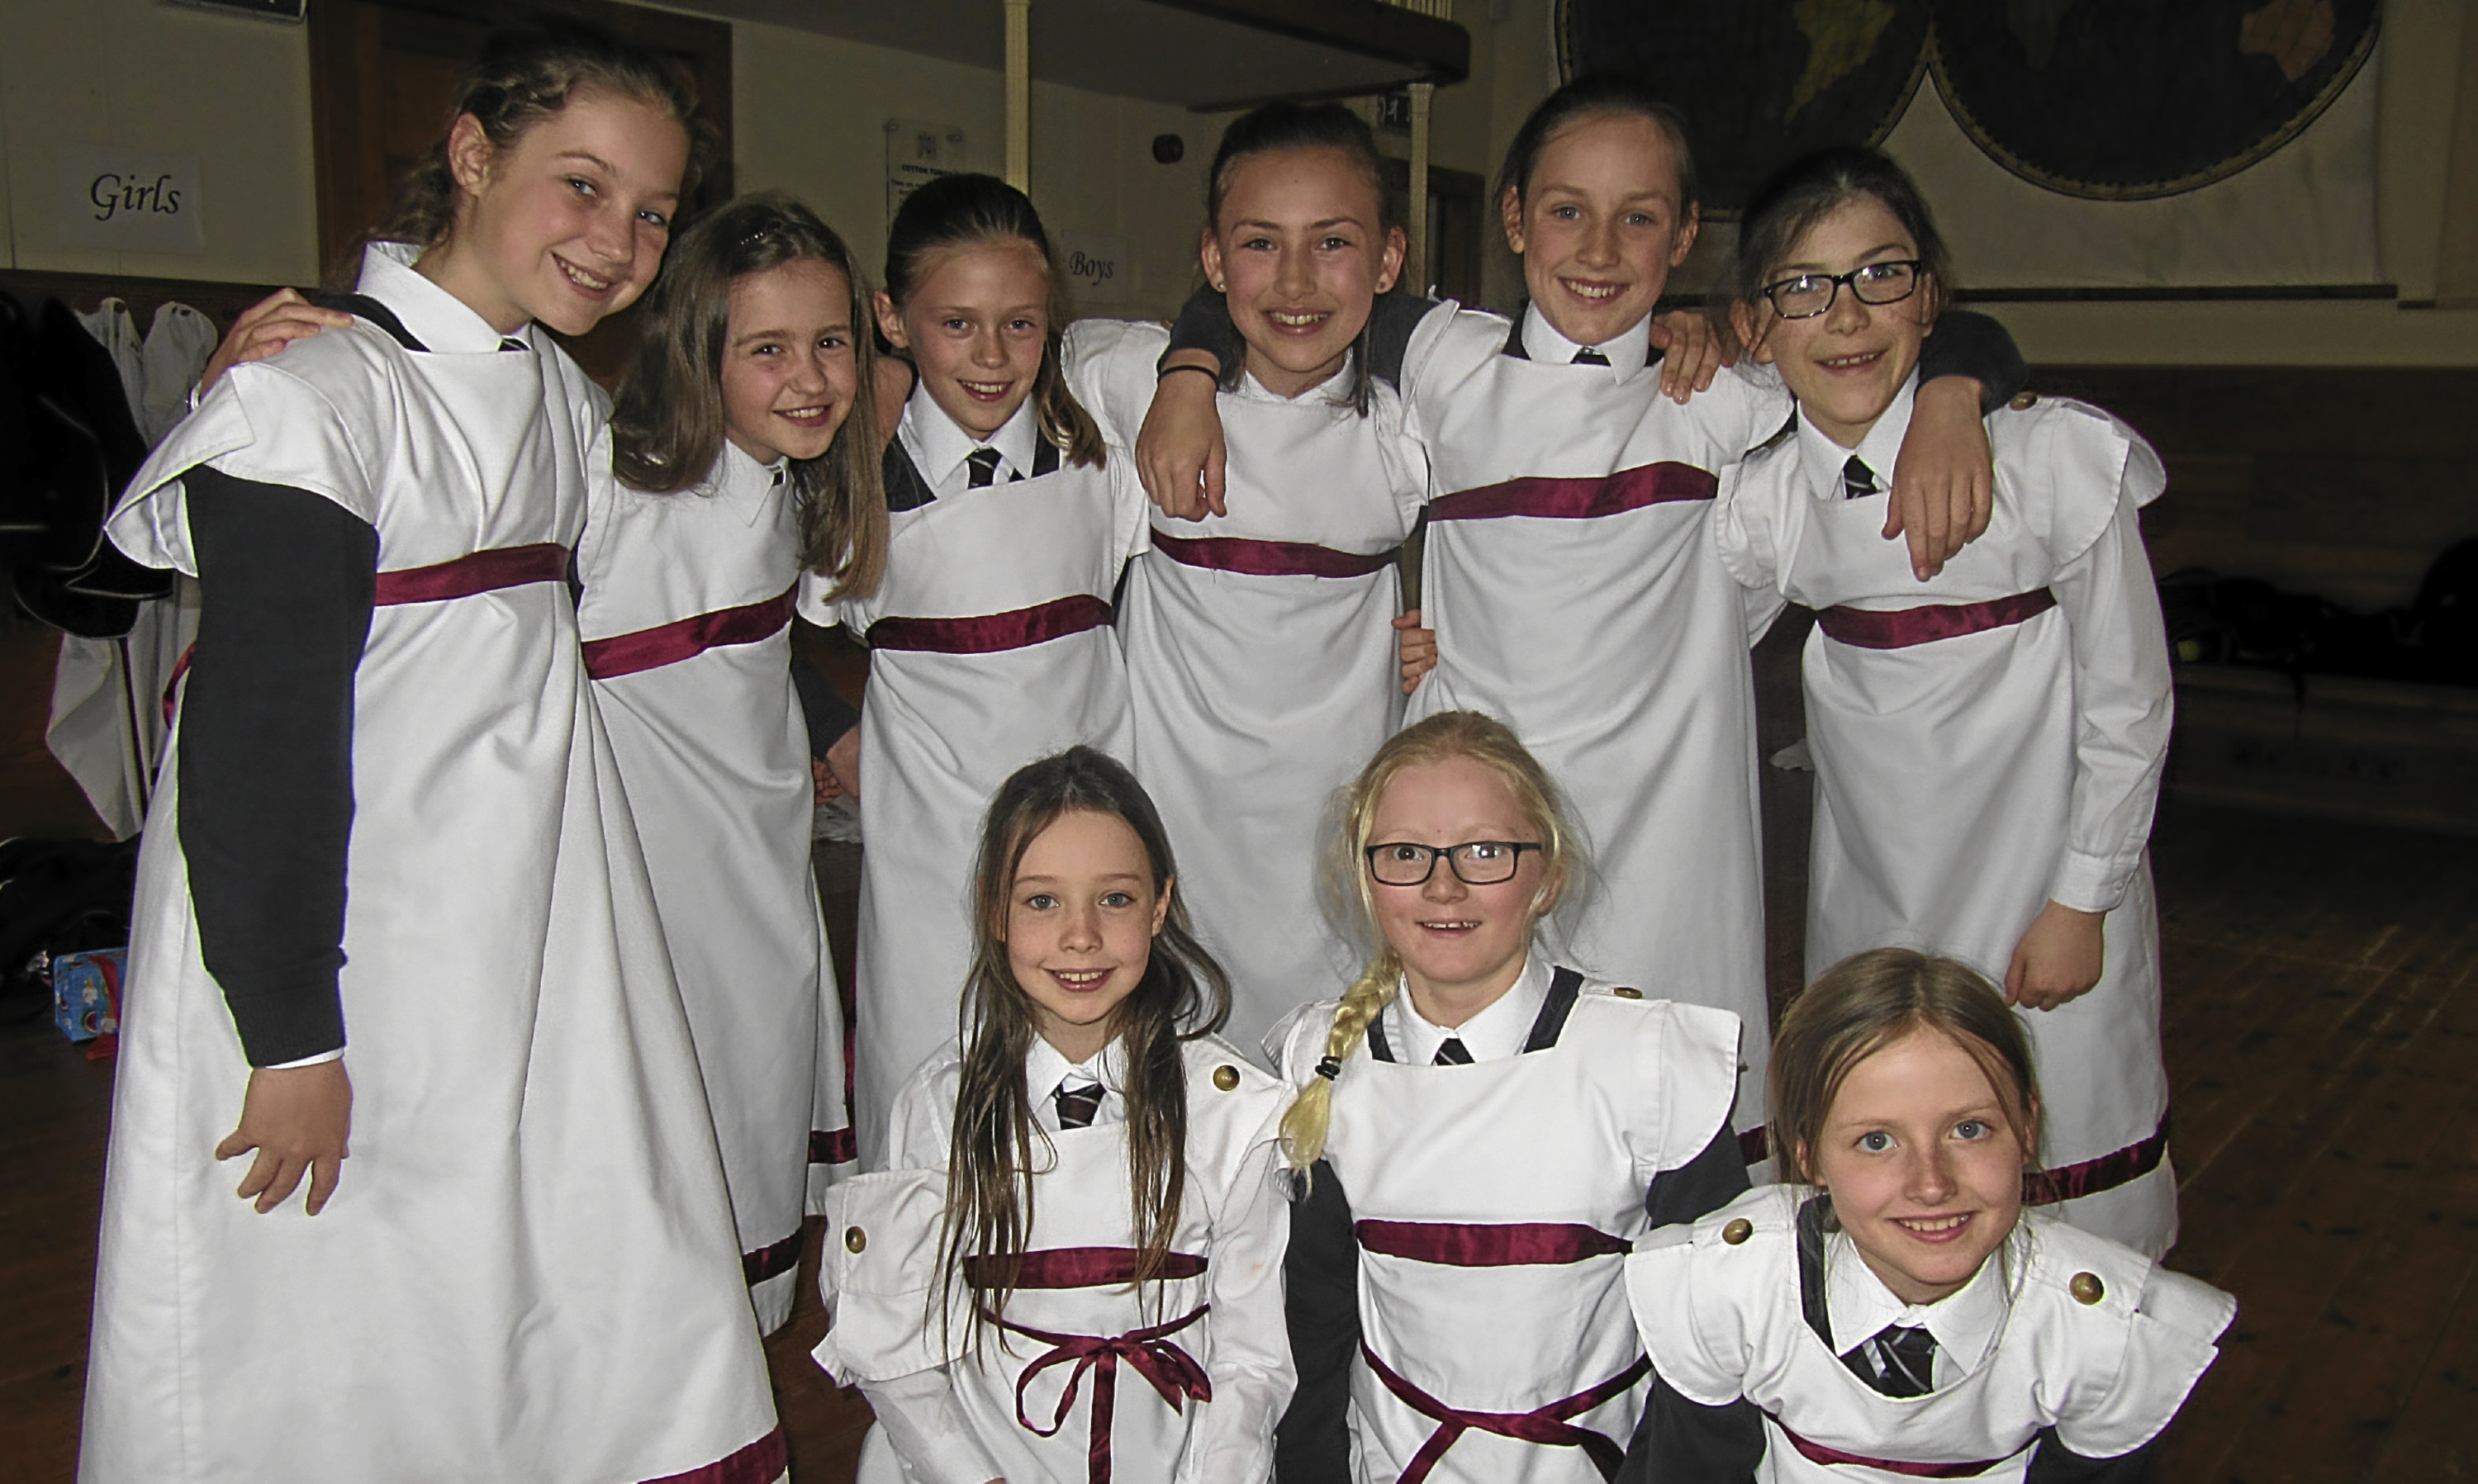 Primary 6 pupils from Morrisons Academy stepped back in time during a successful visit to the award-winning New Lanark World Heritage site.